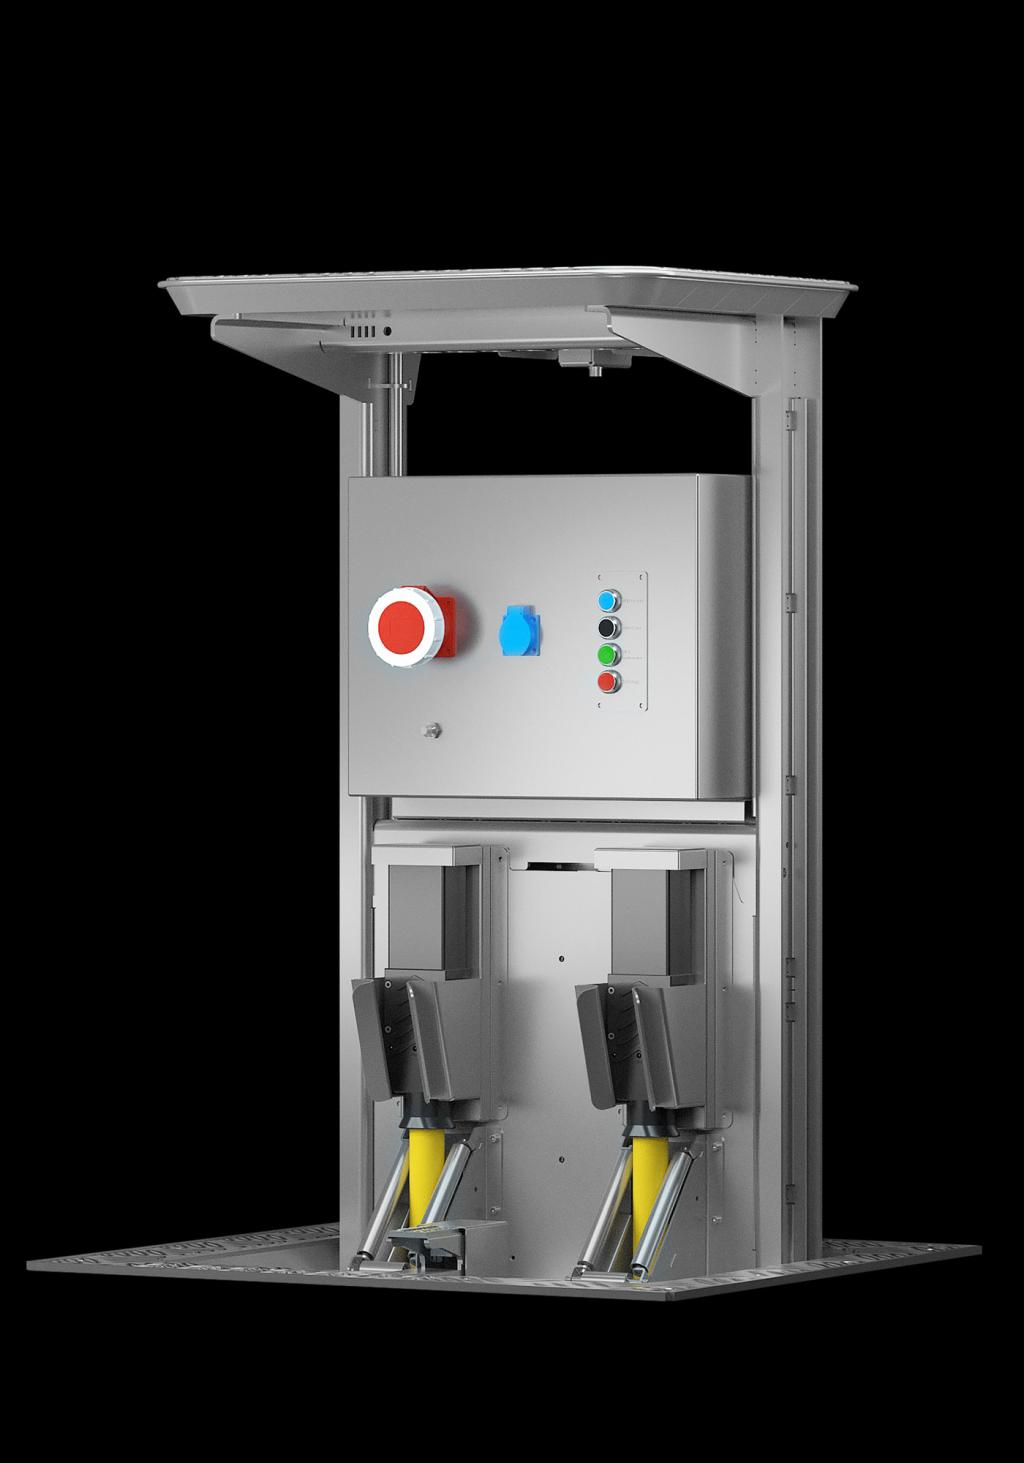 pit system, pop up, 400hz, 50hz, customer solutions, airport solutions, apron